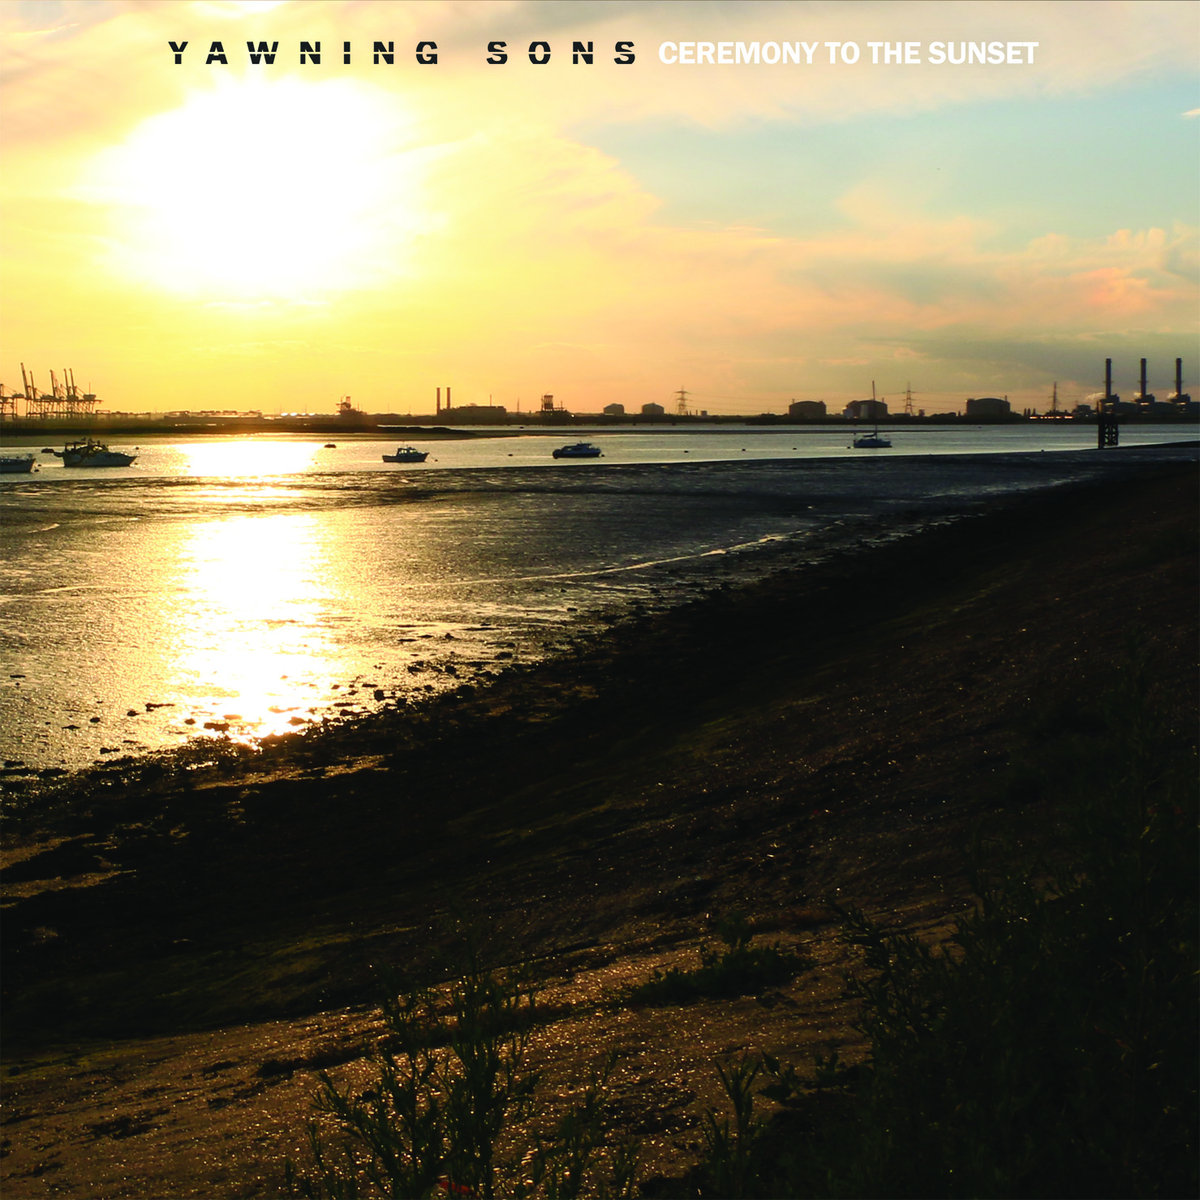 Yawning Sons - Ceremony to the Sunset (vinyl edition)